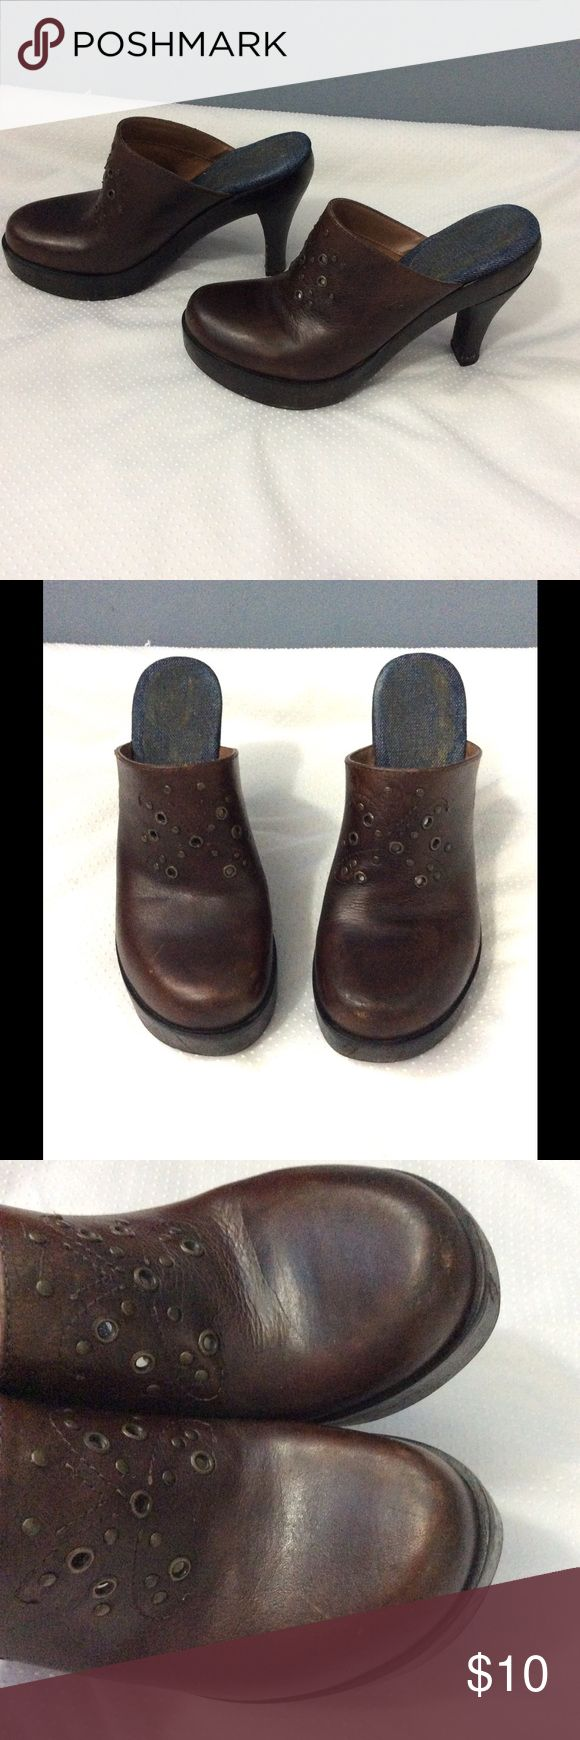 Tommy Hilfiger leather Clogs Good Preowned condition. Some wear all over and mostly on soles and heels. Super comfy Tommy Hilfiger Shoes Mules & Clogs